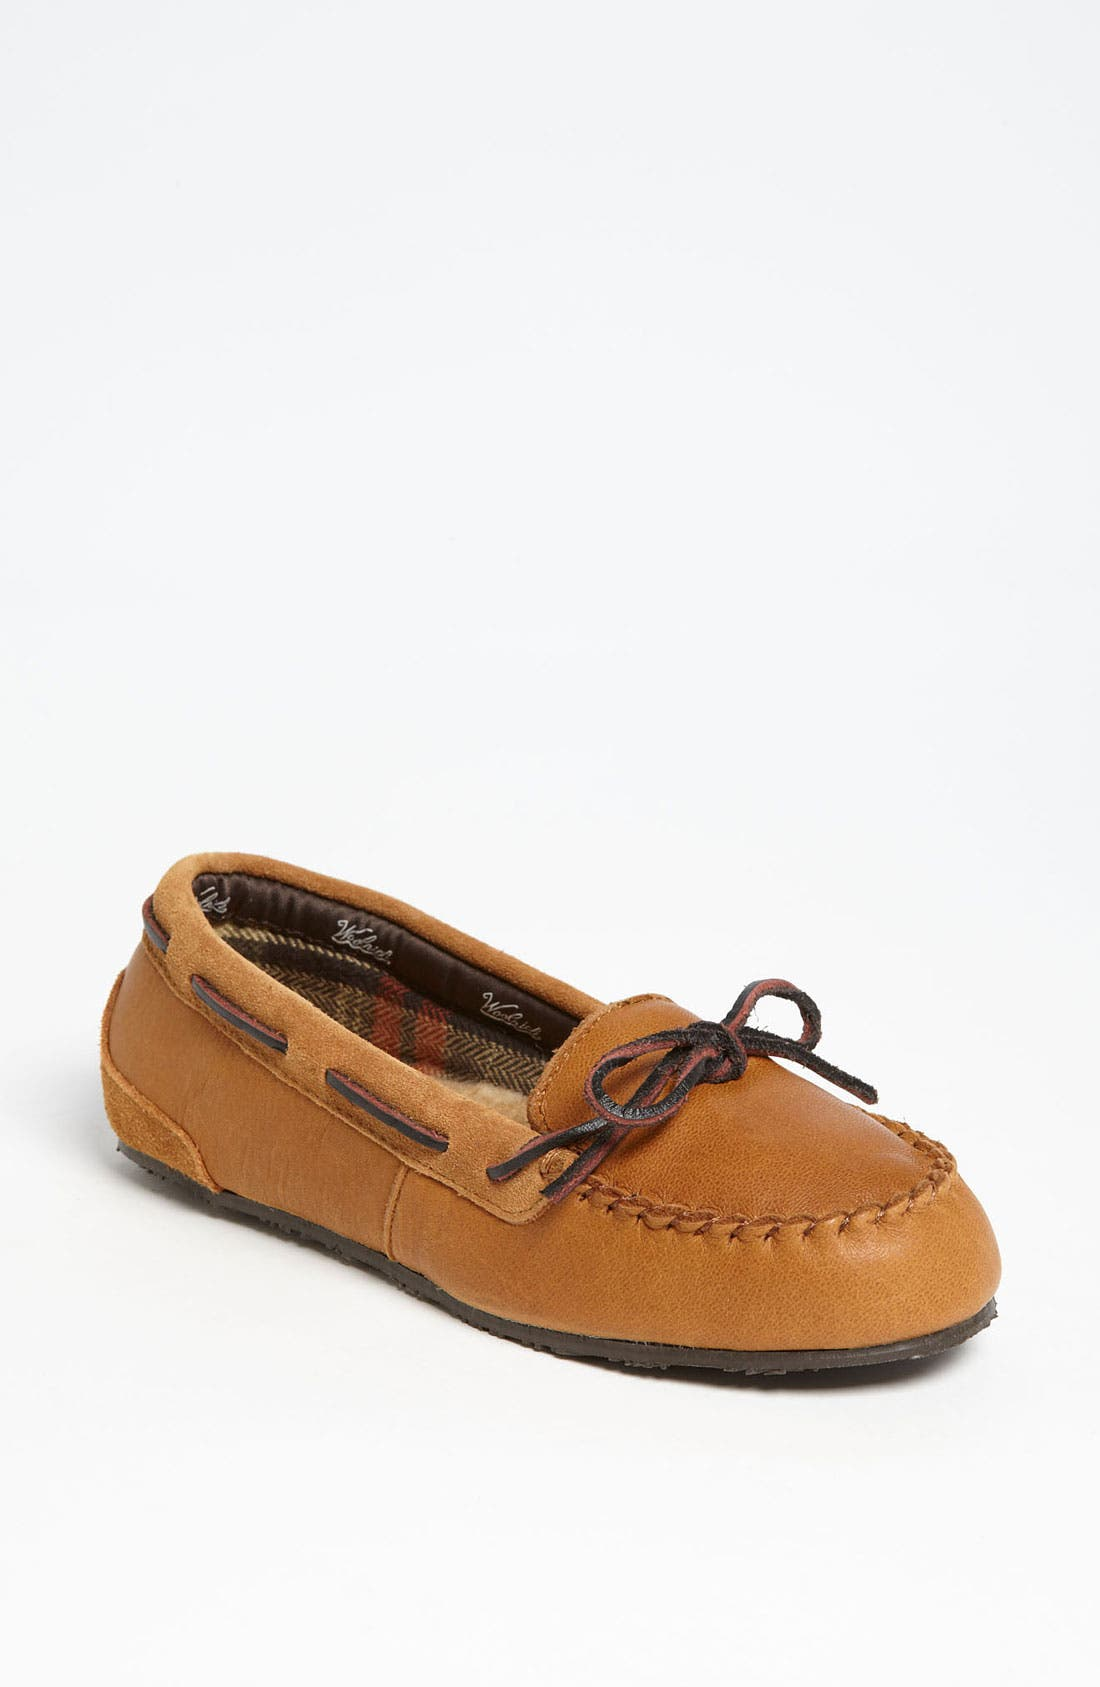 Alternate Image 1 Selected - Woolrich 'Brenta' Moccasin Slipper